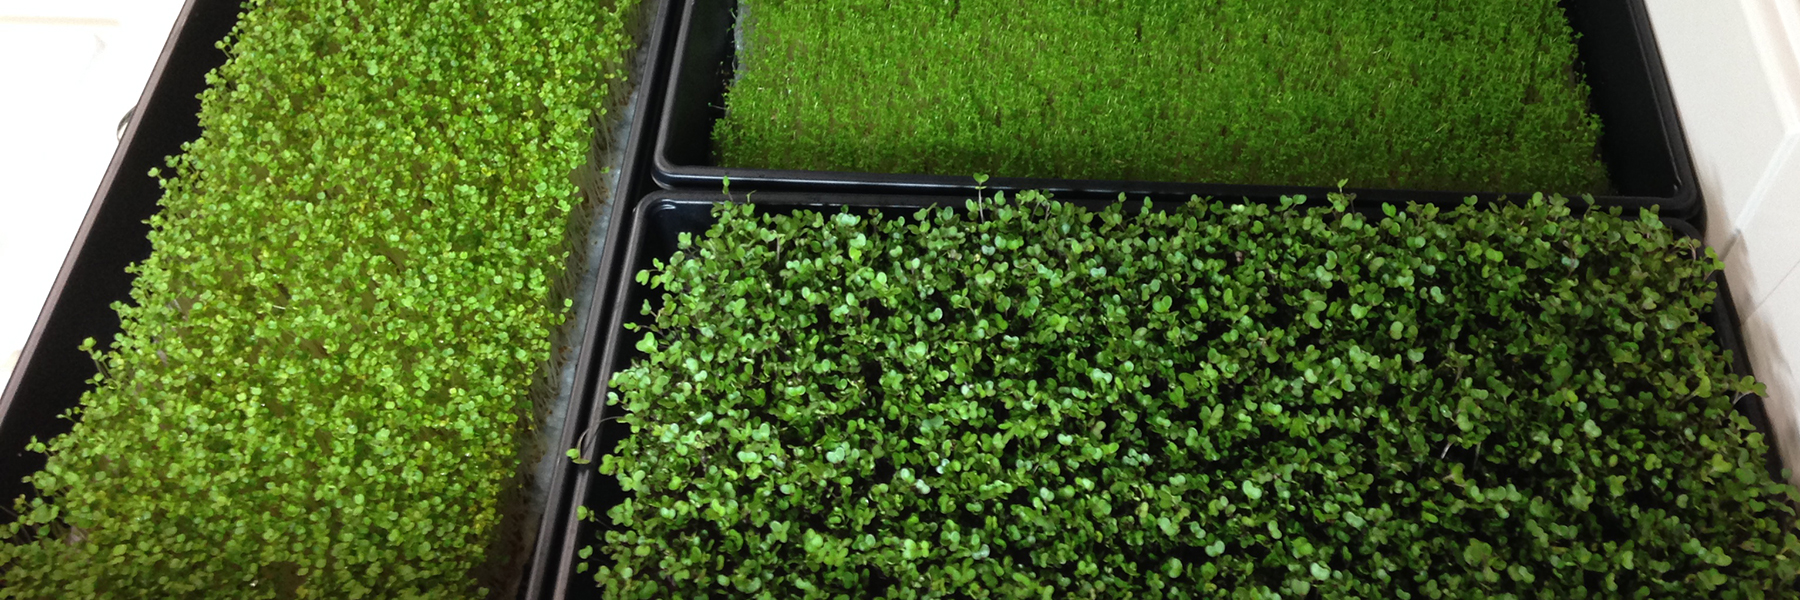 microgreen systems